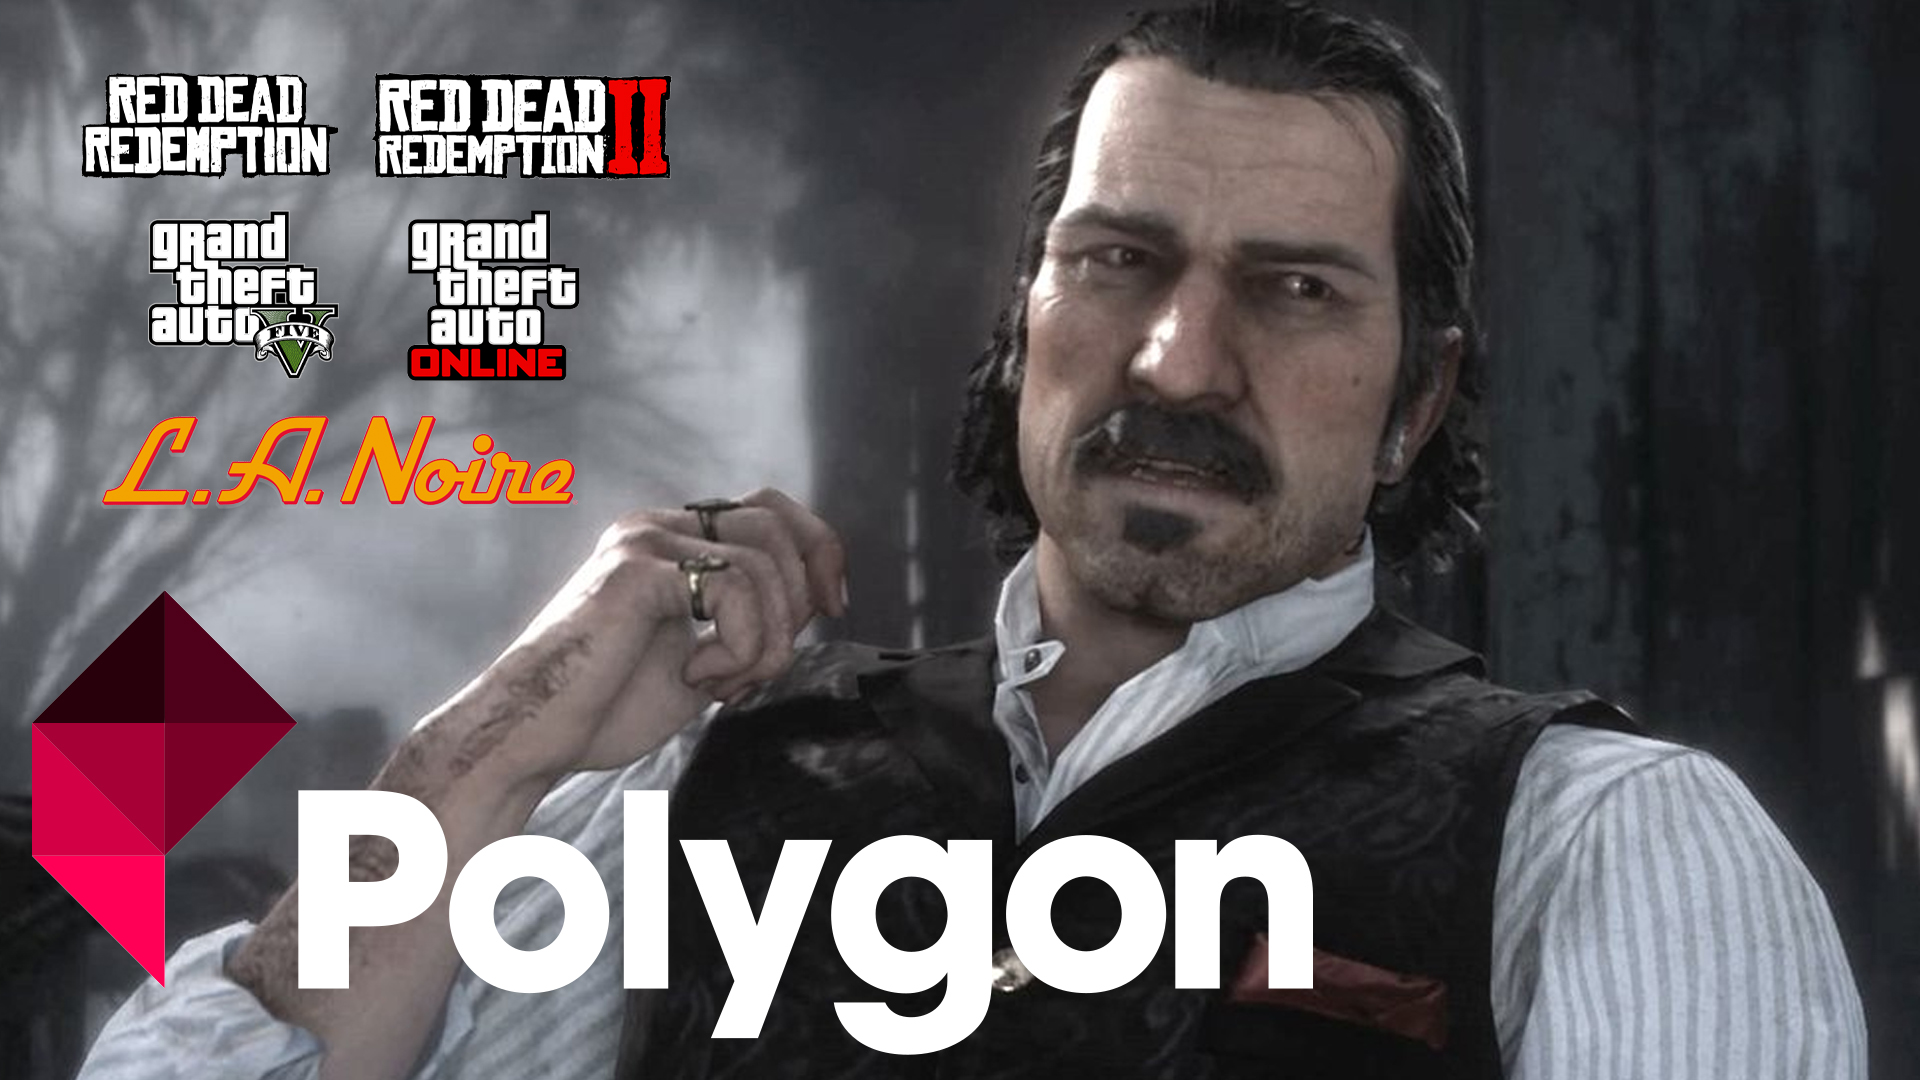 Top Personnages Rockstar Games Polygon